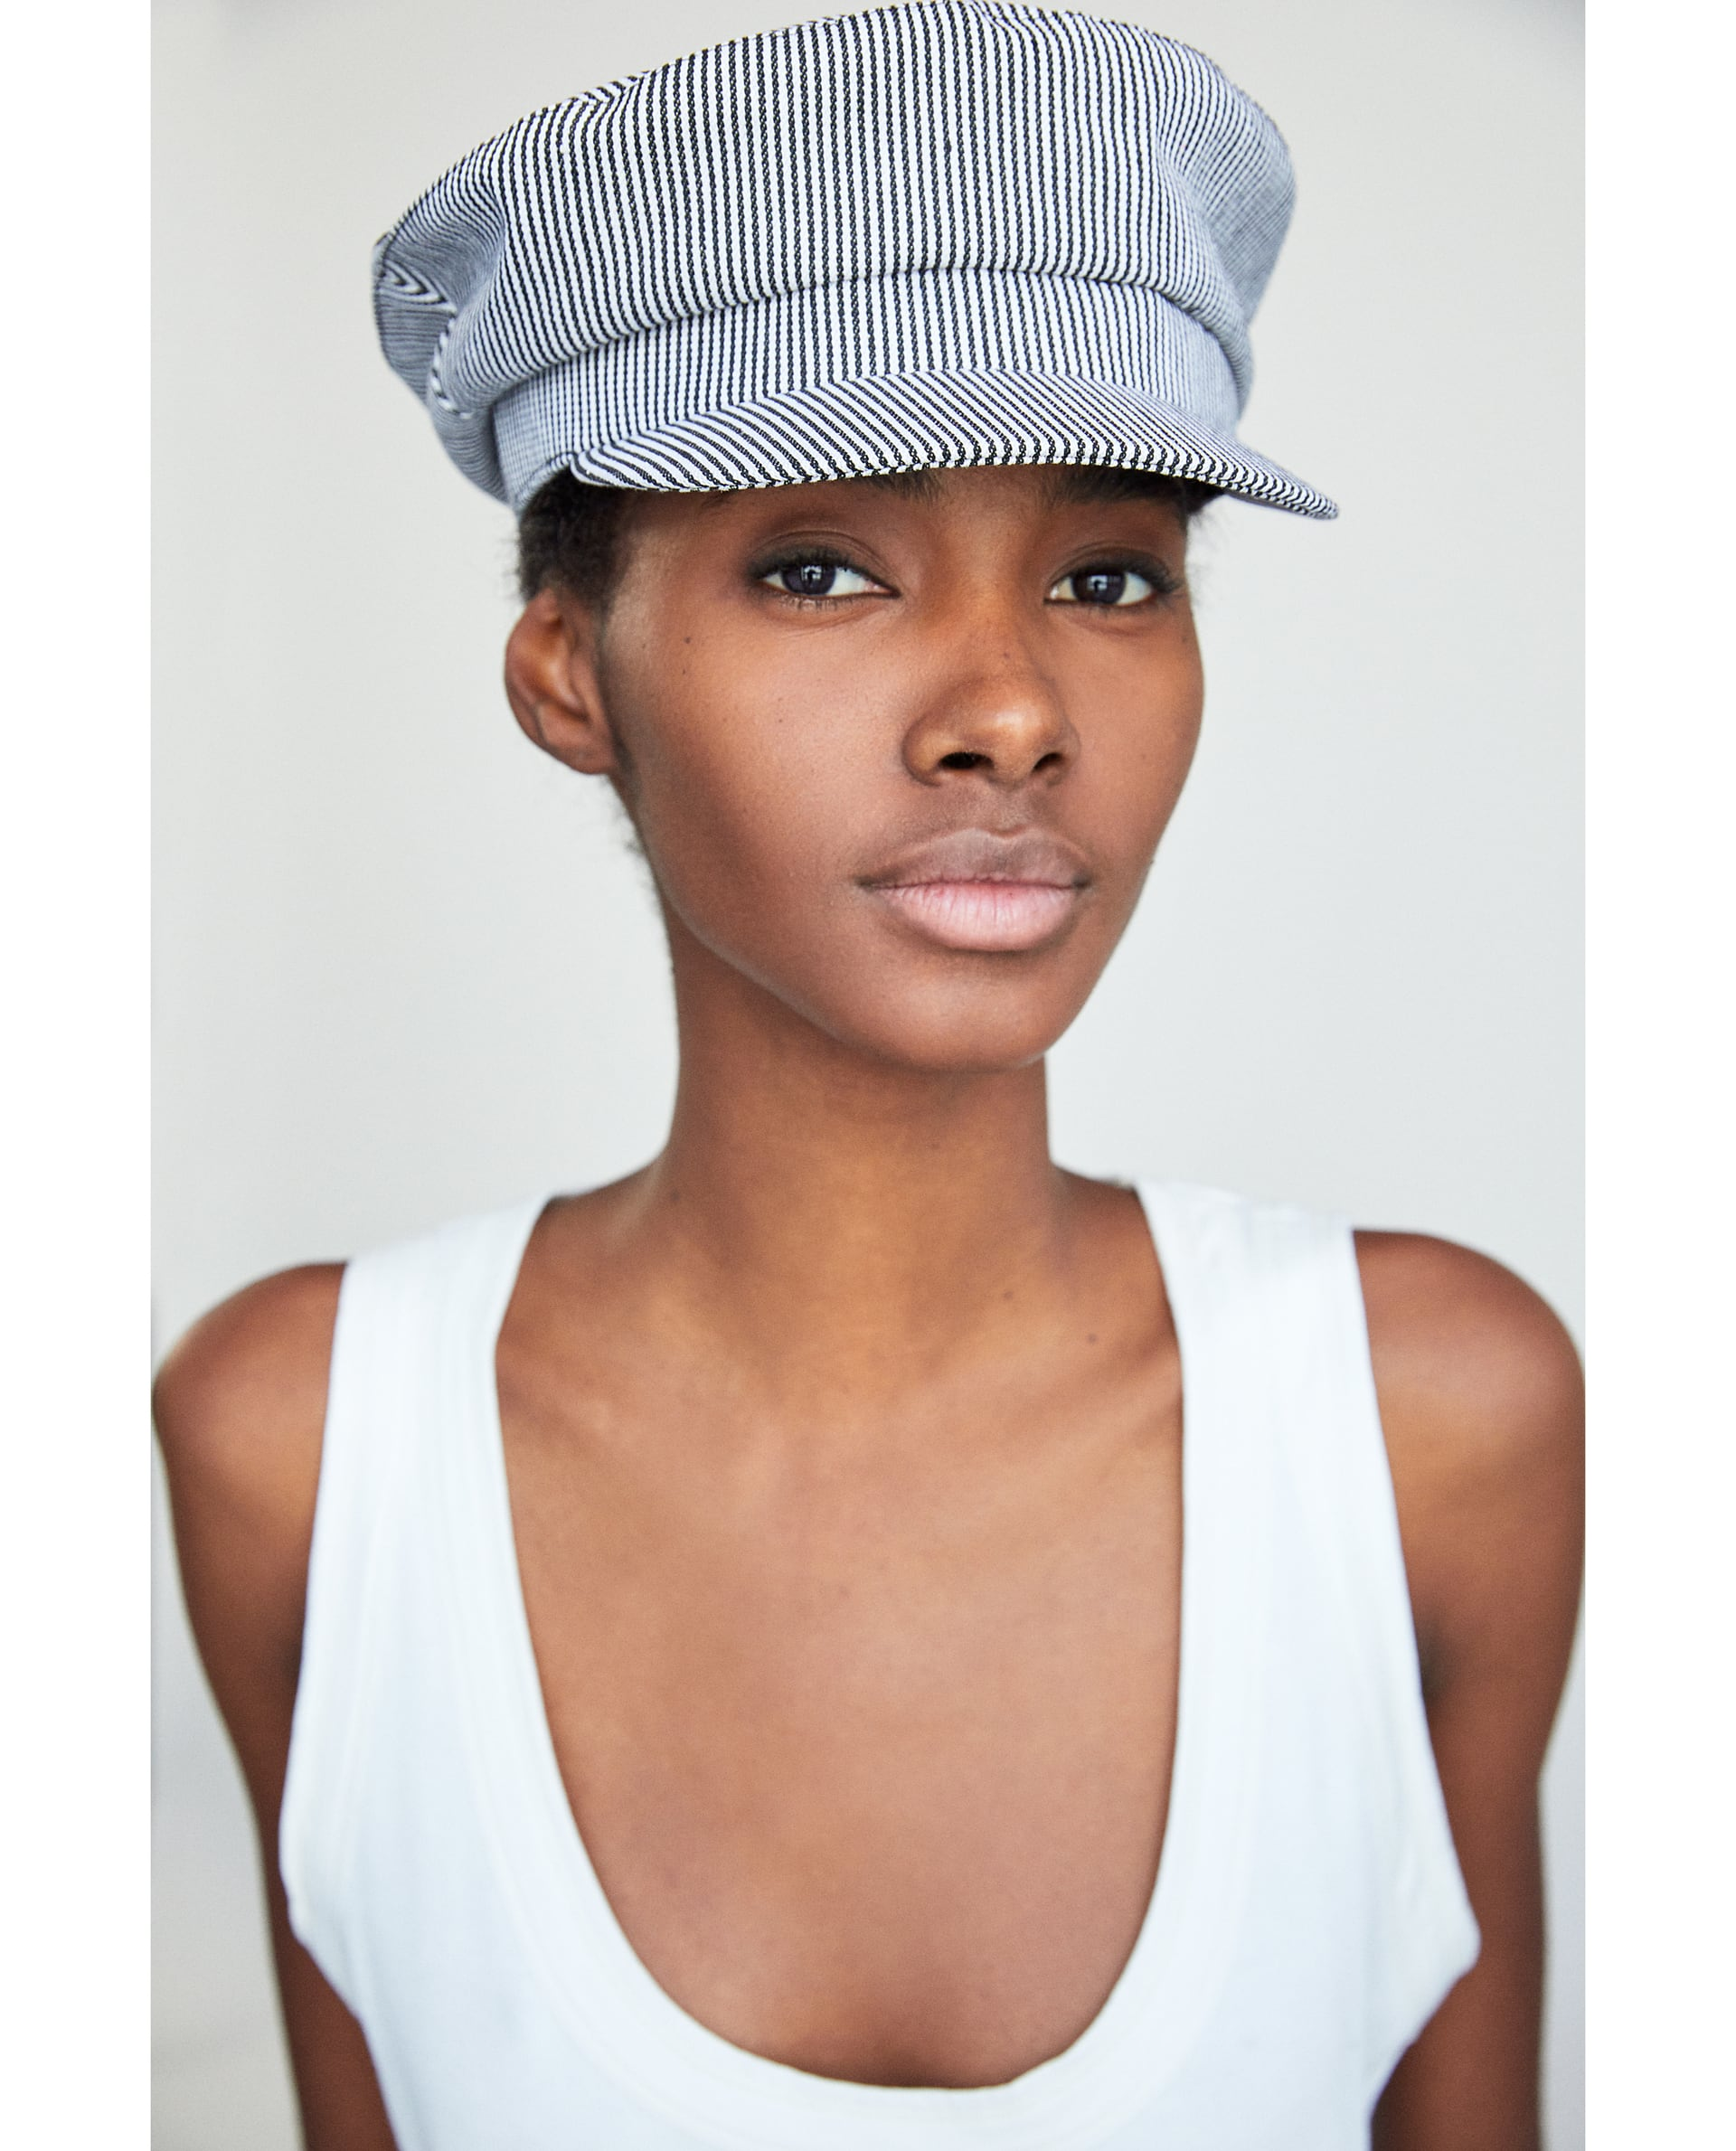 Forehead protection with a peak fronted cap. - Zara, £15.99